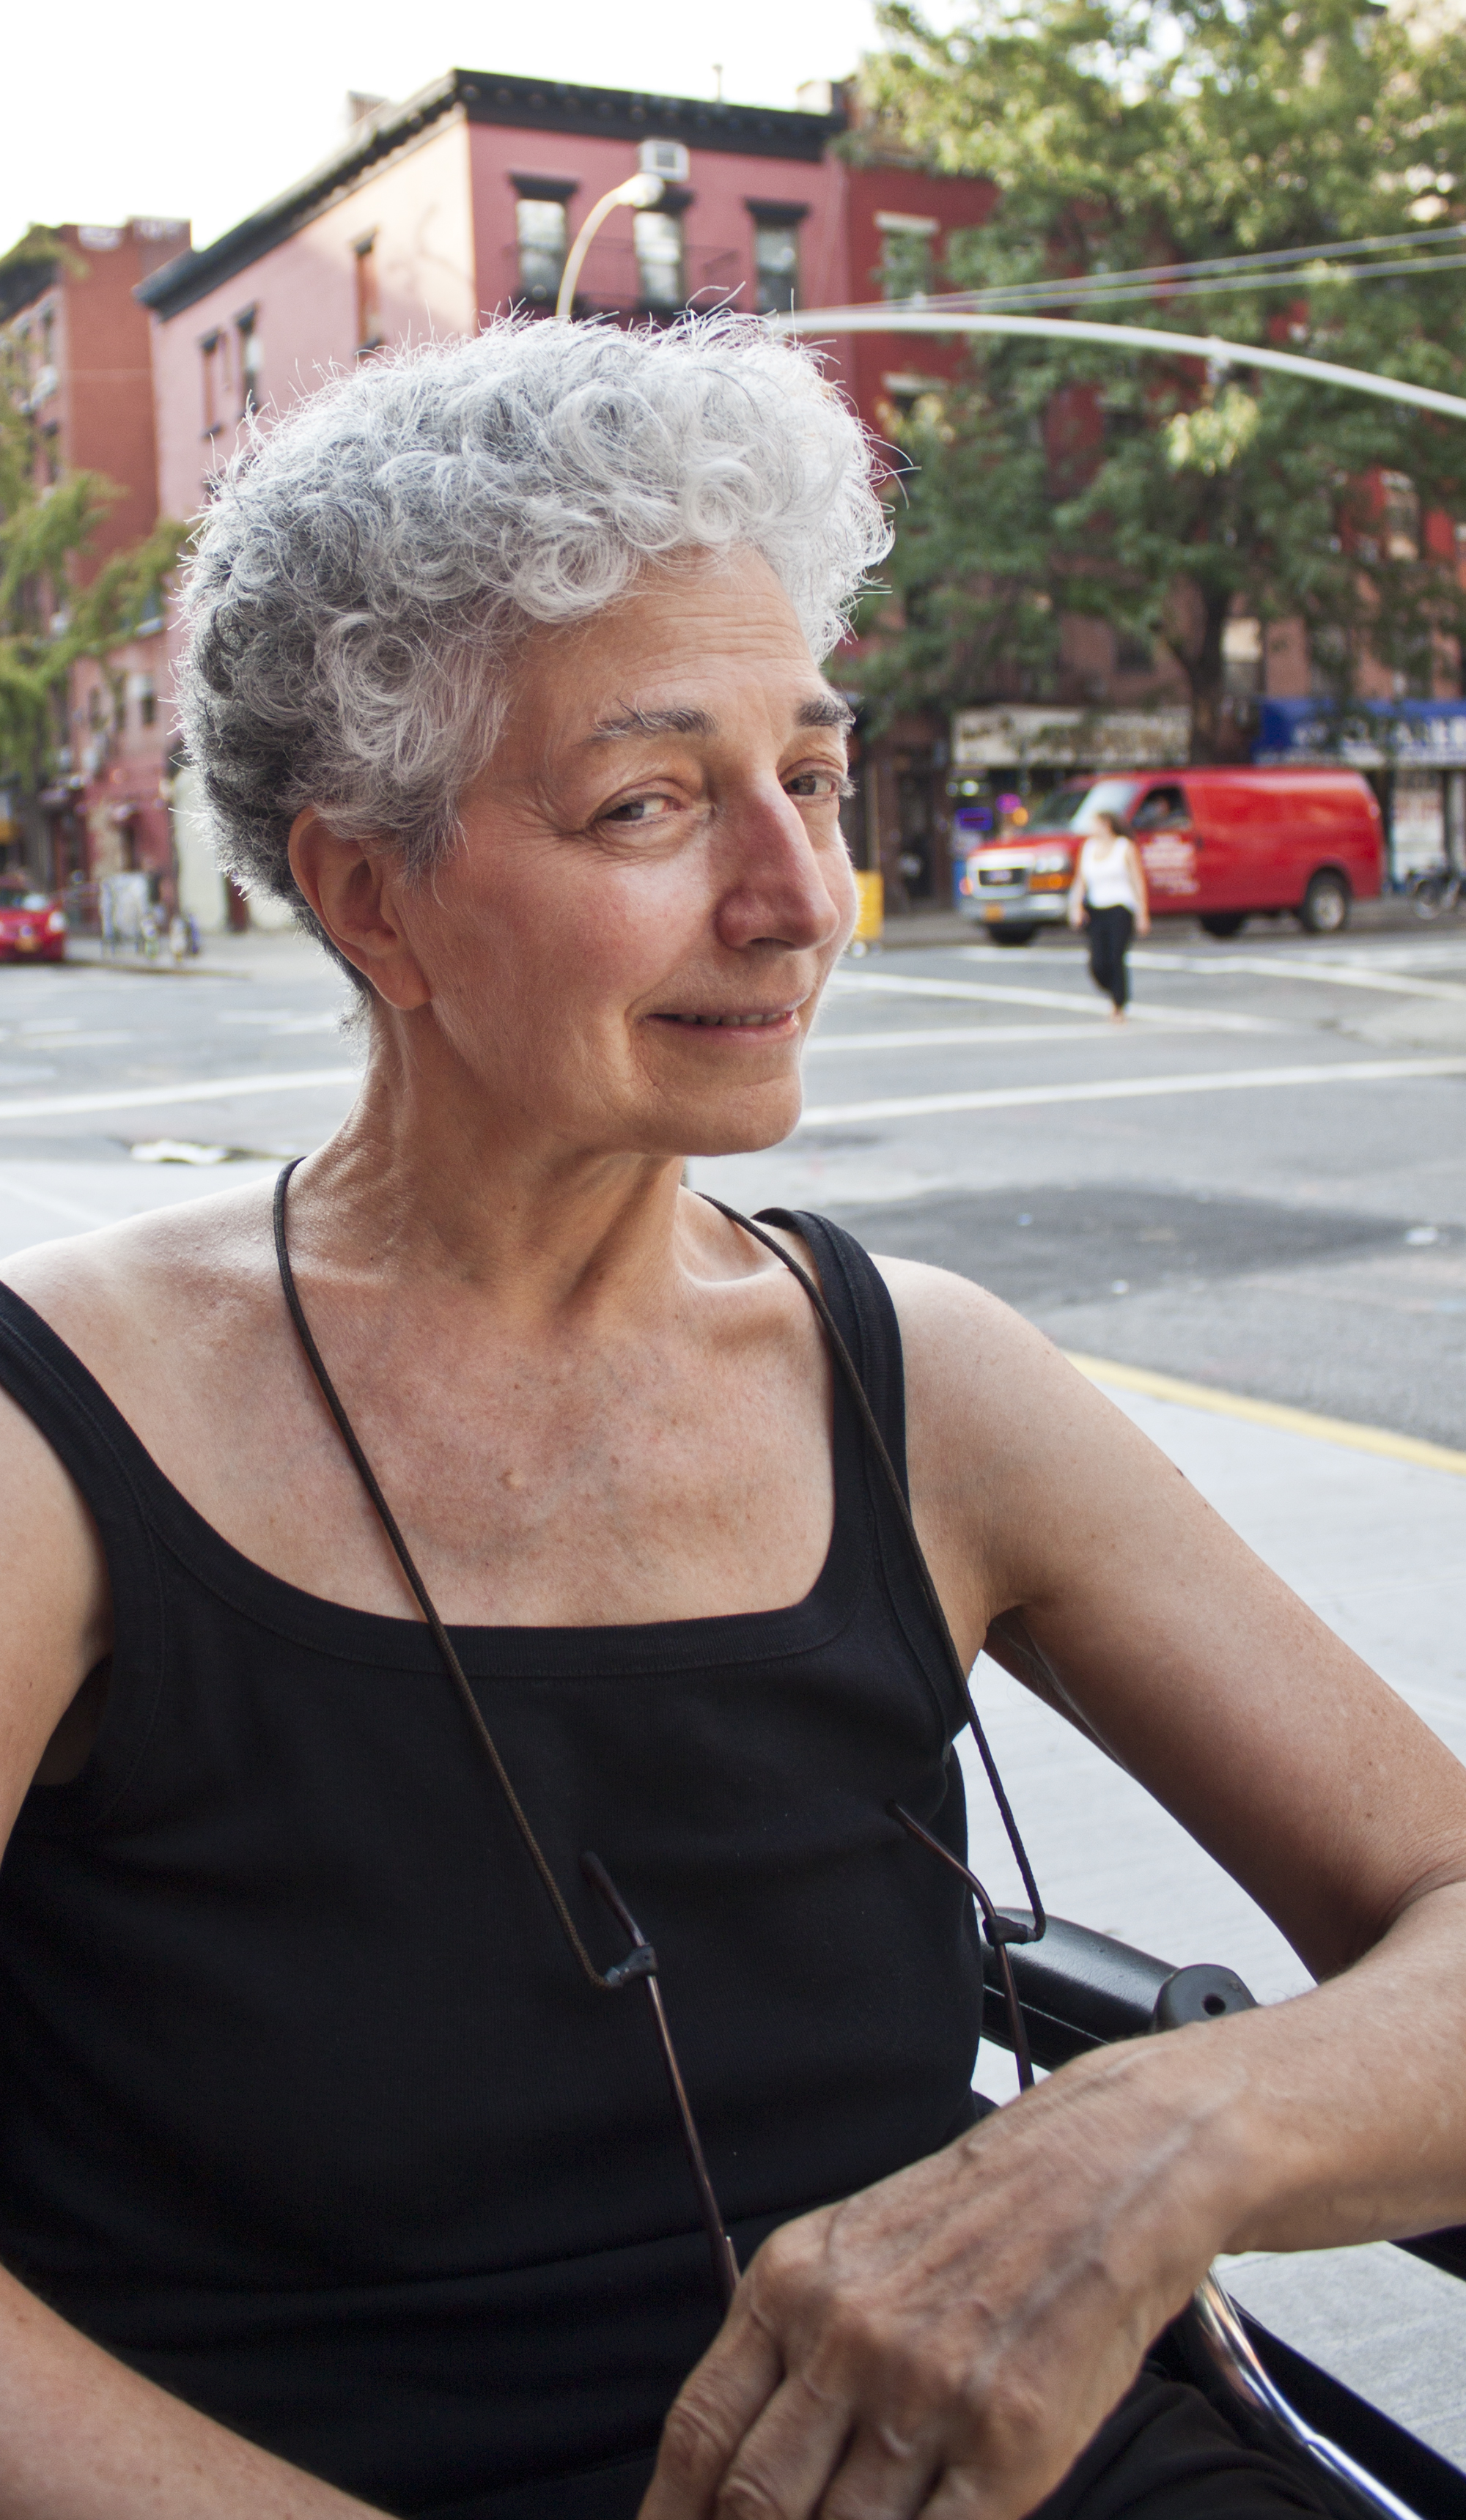 Mona (last name not provided) pictured in New York, N.Y., on Aug. 11, 2012. (Steve Silva)